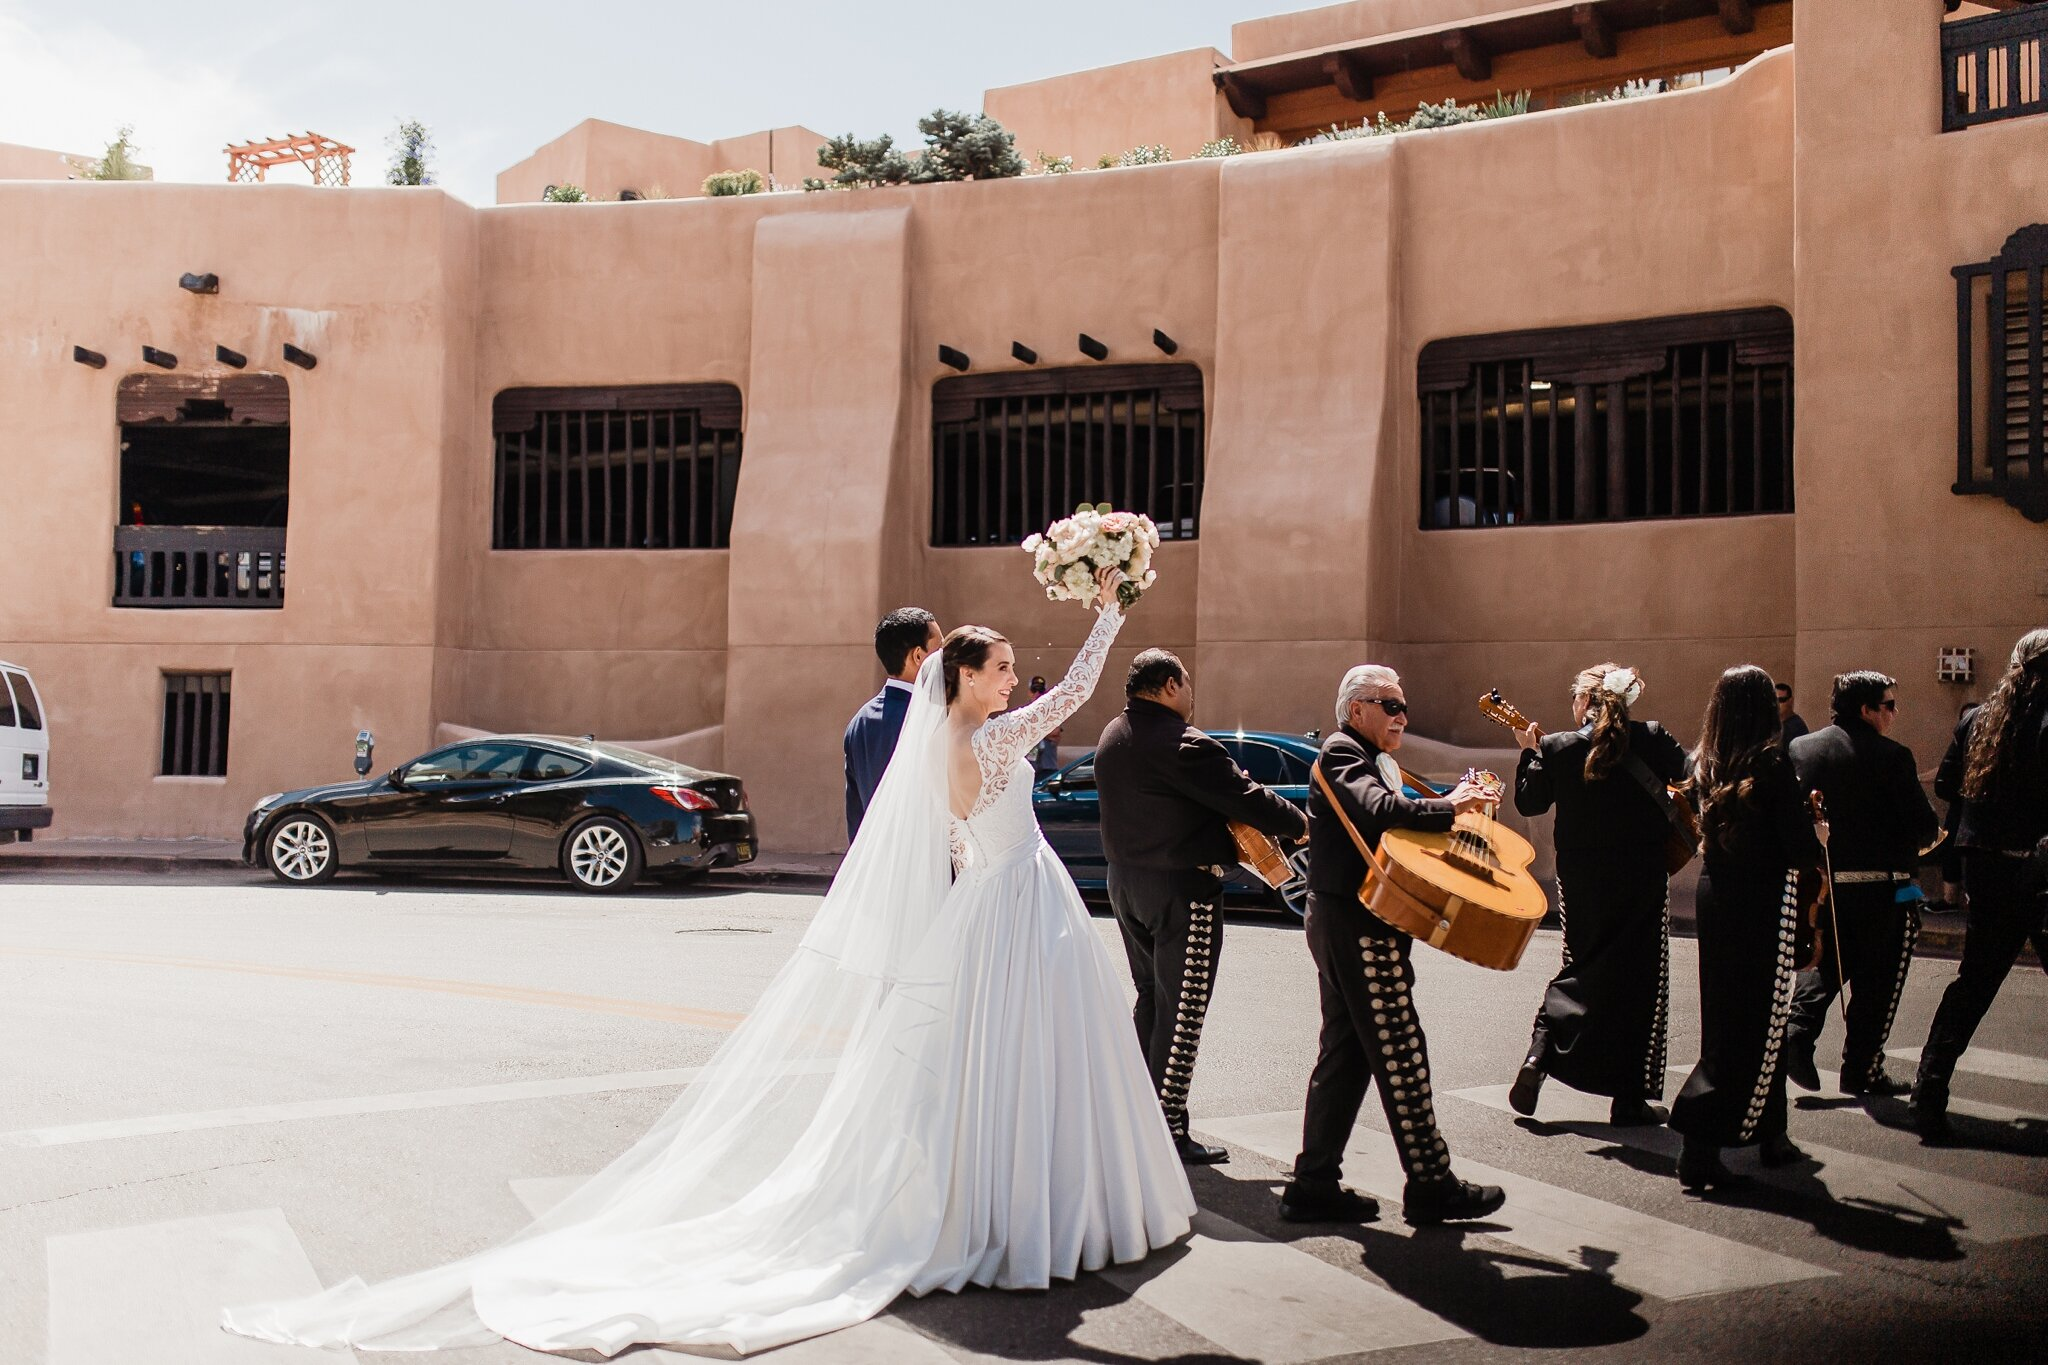 Alicia+lucia+photography+-+albuquerque+wedding+photographer+-+santa+fe+wedding+photography+-+new+mexico+wedding+photographer+-+new+mexico+wedding+-+hindu+wedding+-+catholic+wedding+-+multicultural+wedding+-+santa+fe+wedding_0040.jpg